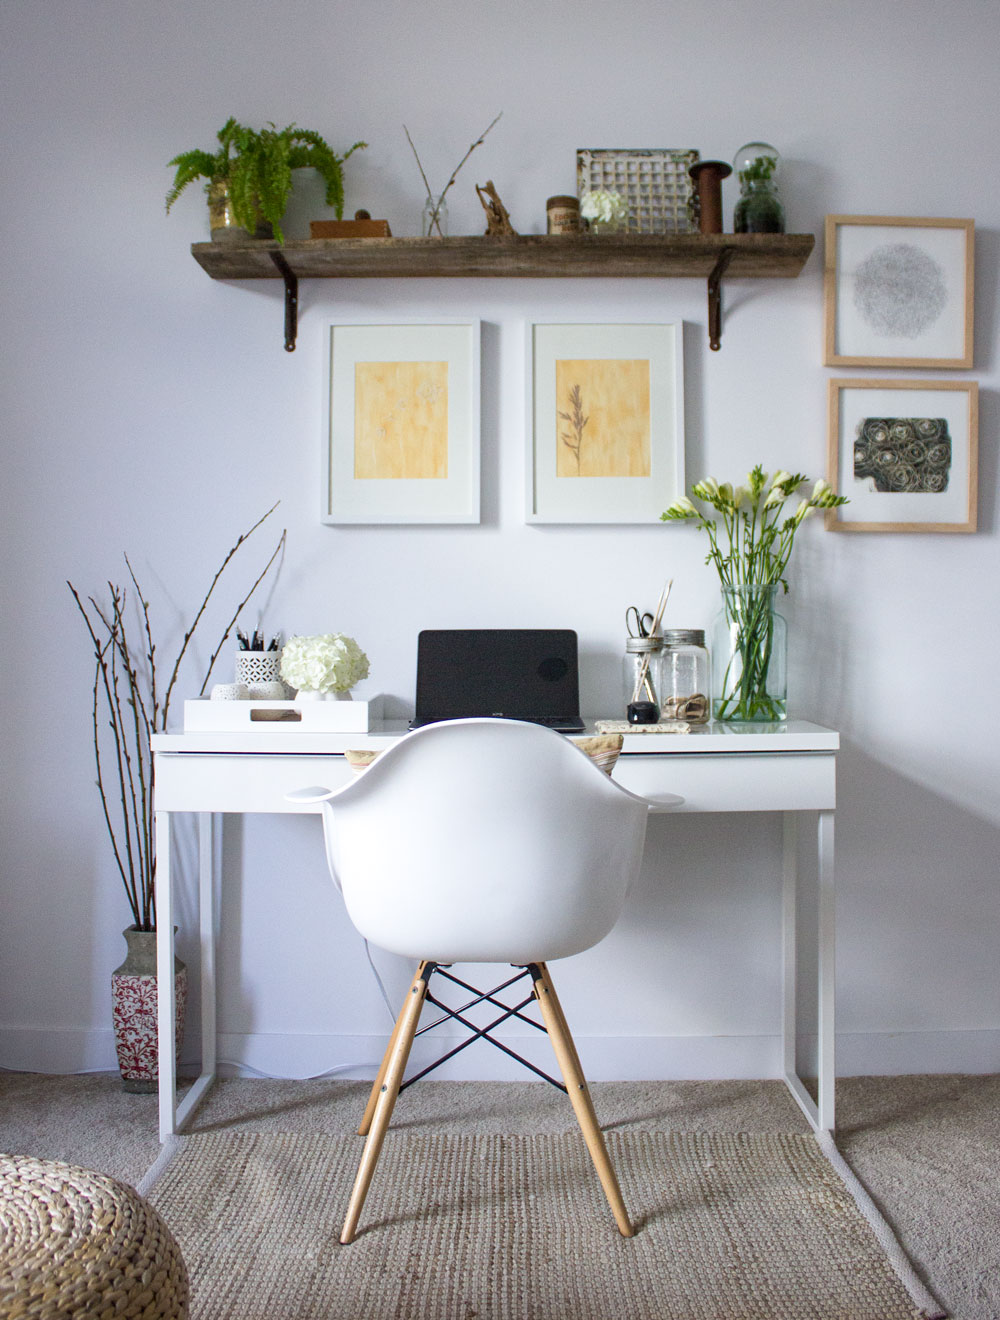 refreshed-spring-home-workspace.jpg